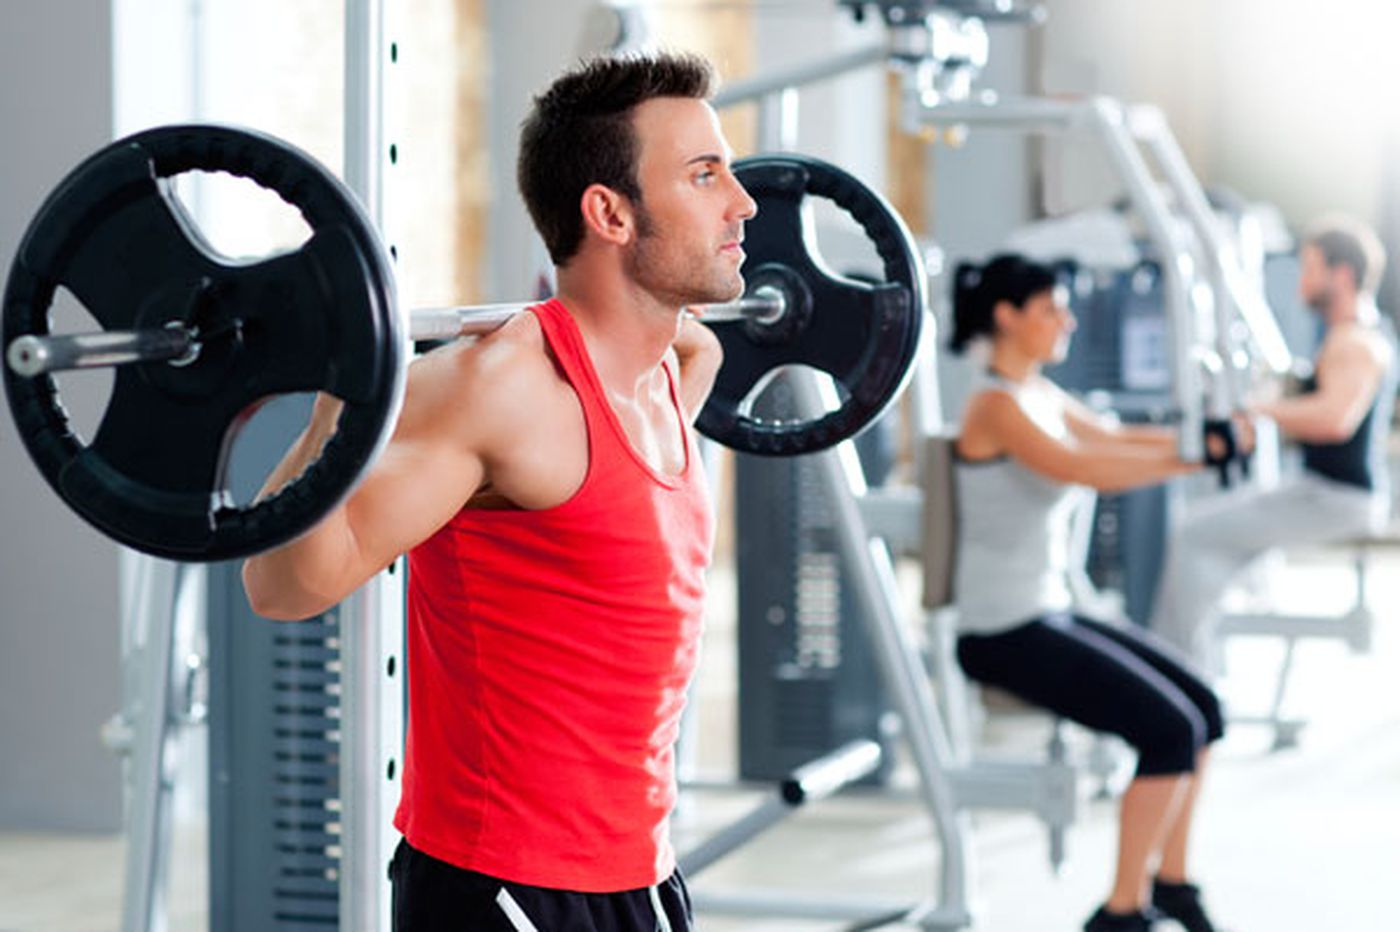 Exercise your gym etiquette with these 12 tips